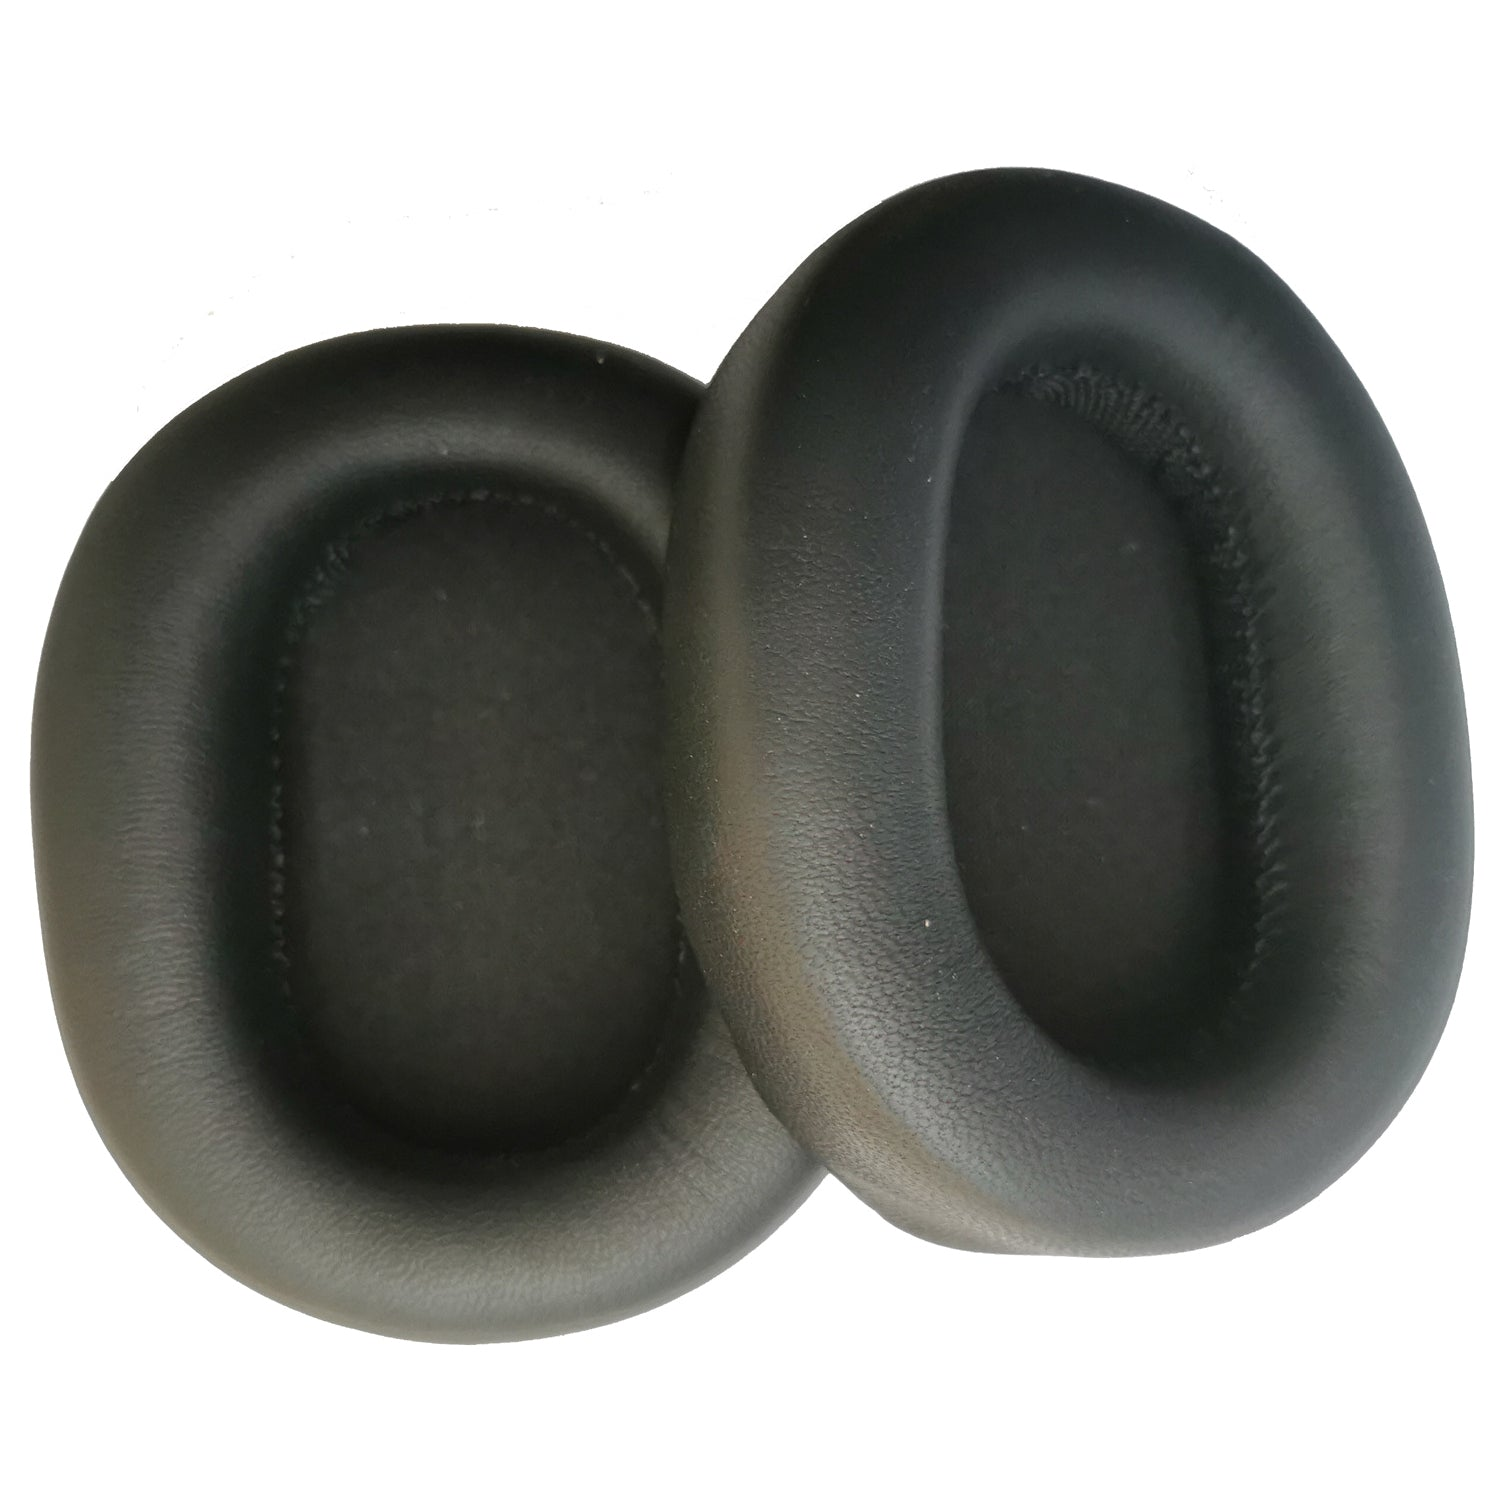 Audeze Replacement Earpads for LCD-1 Headphones